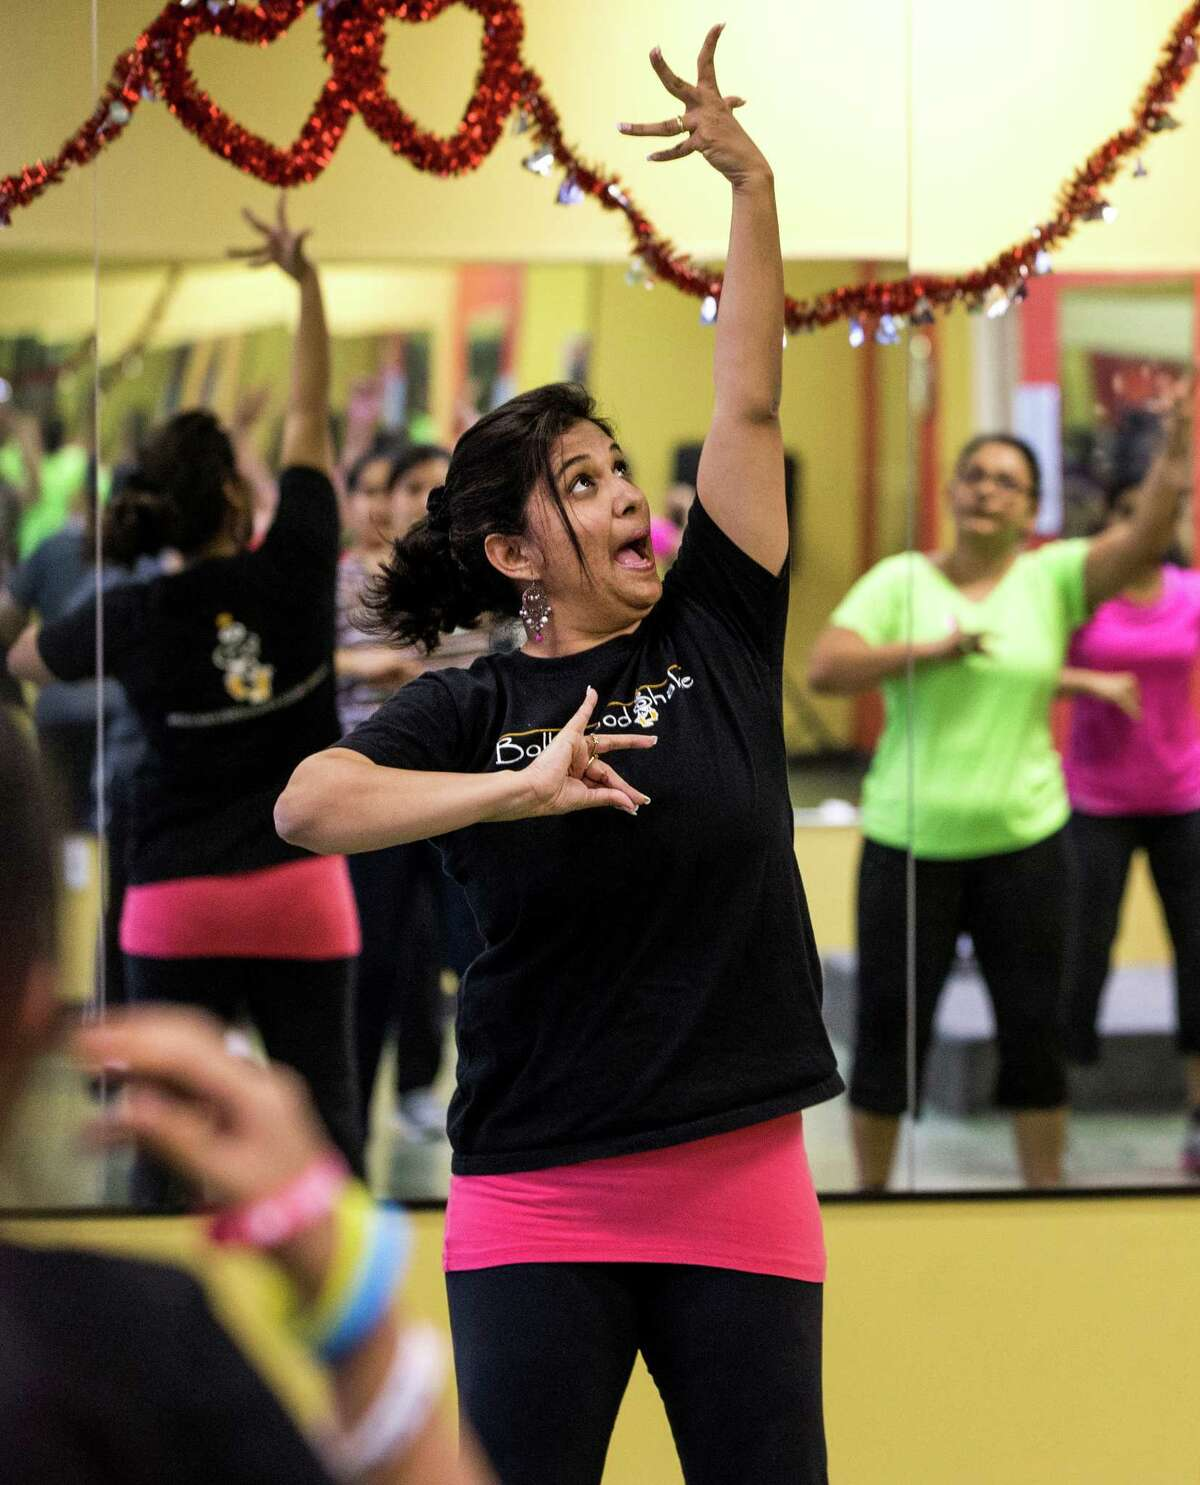 Bollywood Shake founder Ruchika Dias leads a dance-fitness class at her studio.